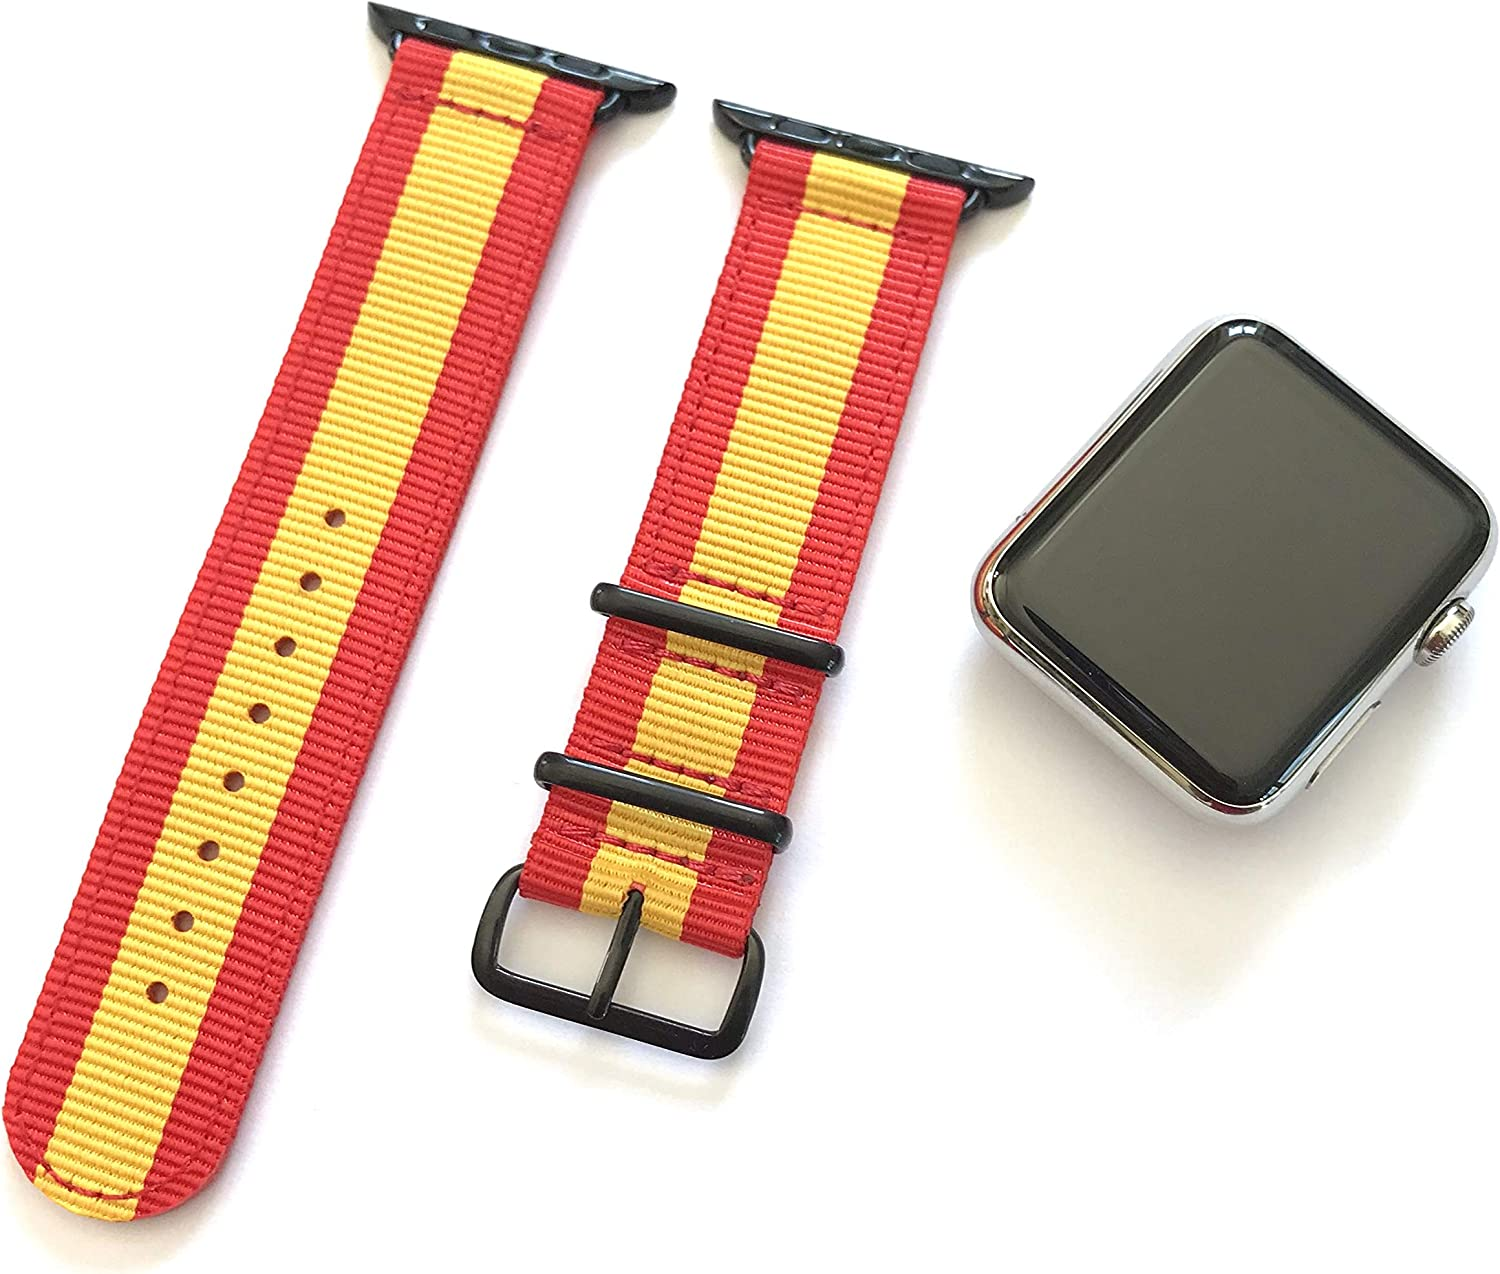 Correa para Apple Watch Nylon NATO Rojo Amarillo + adaptadores ...